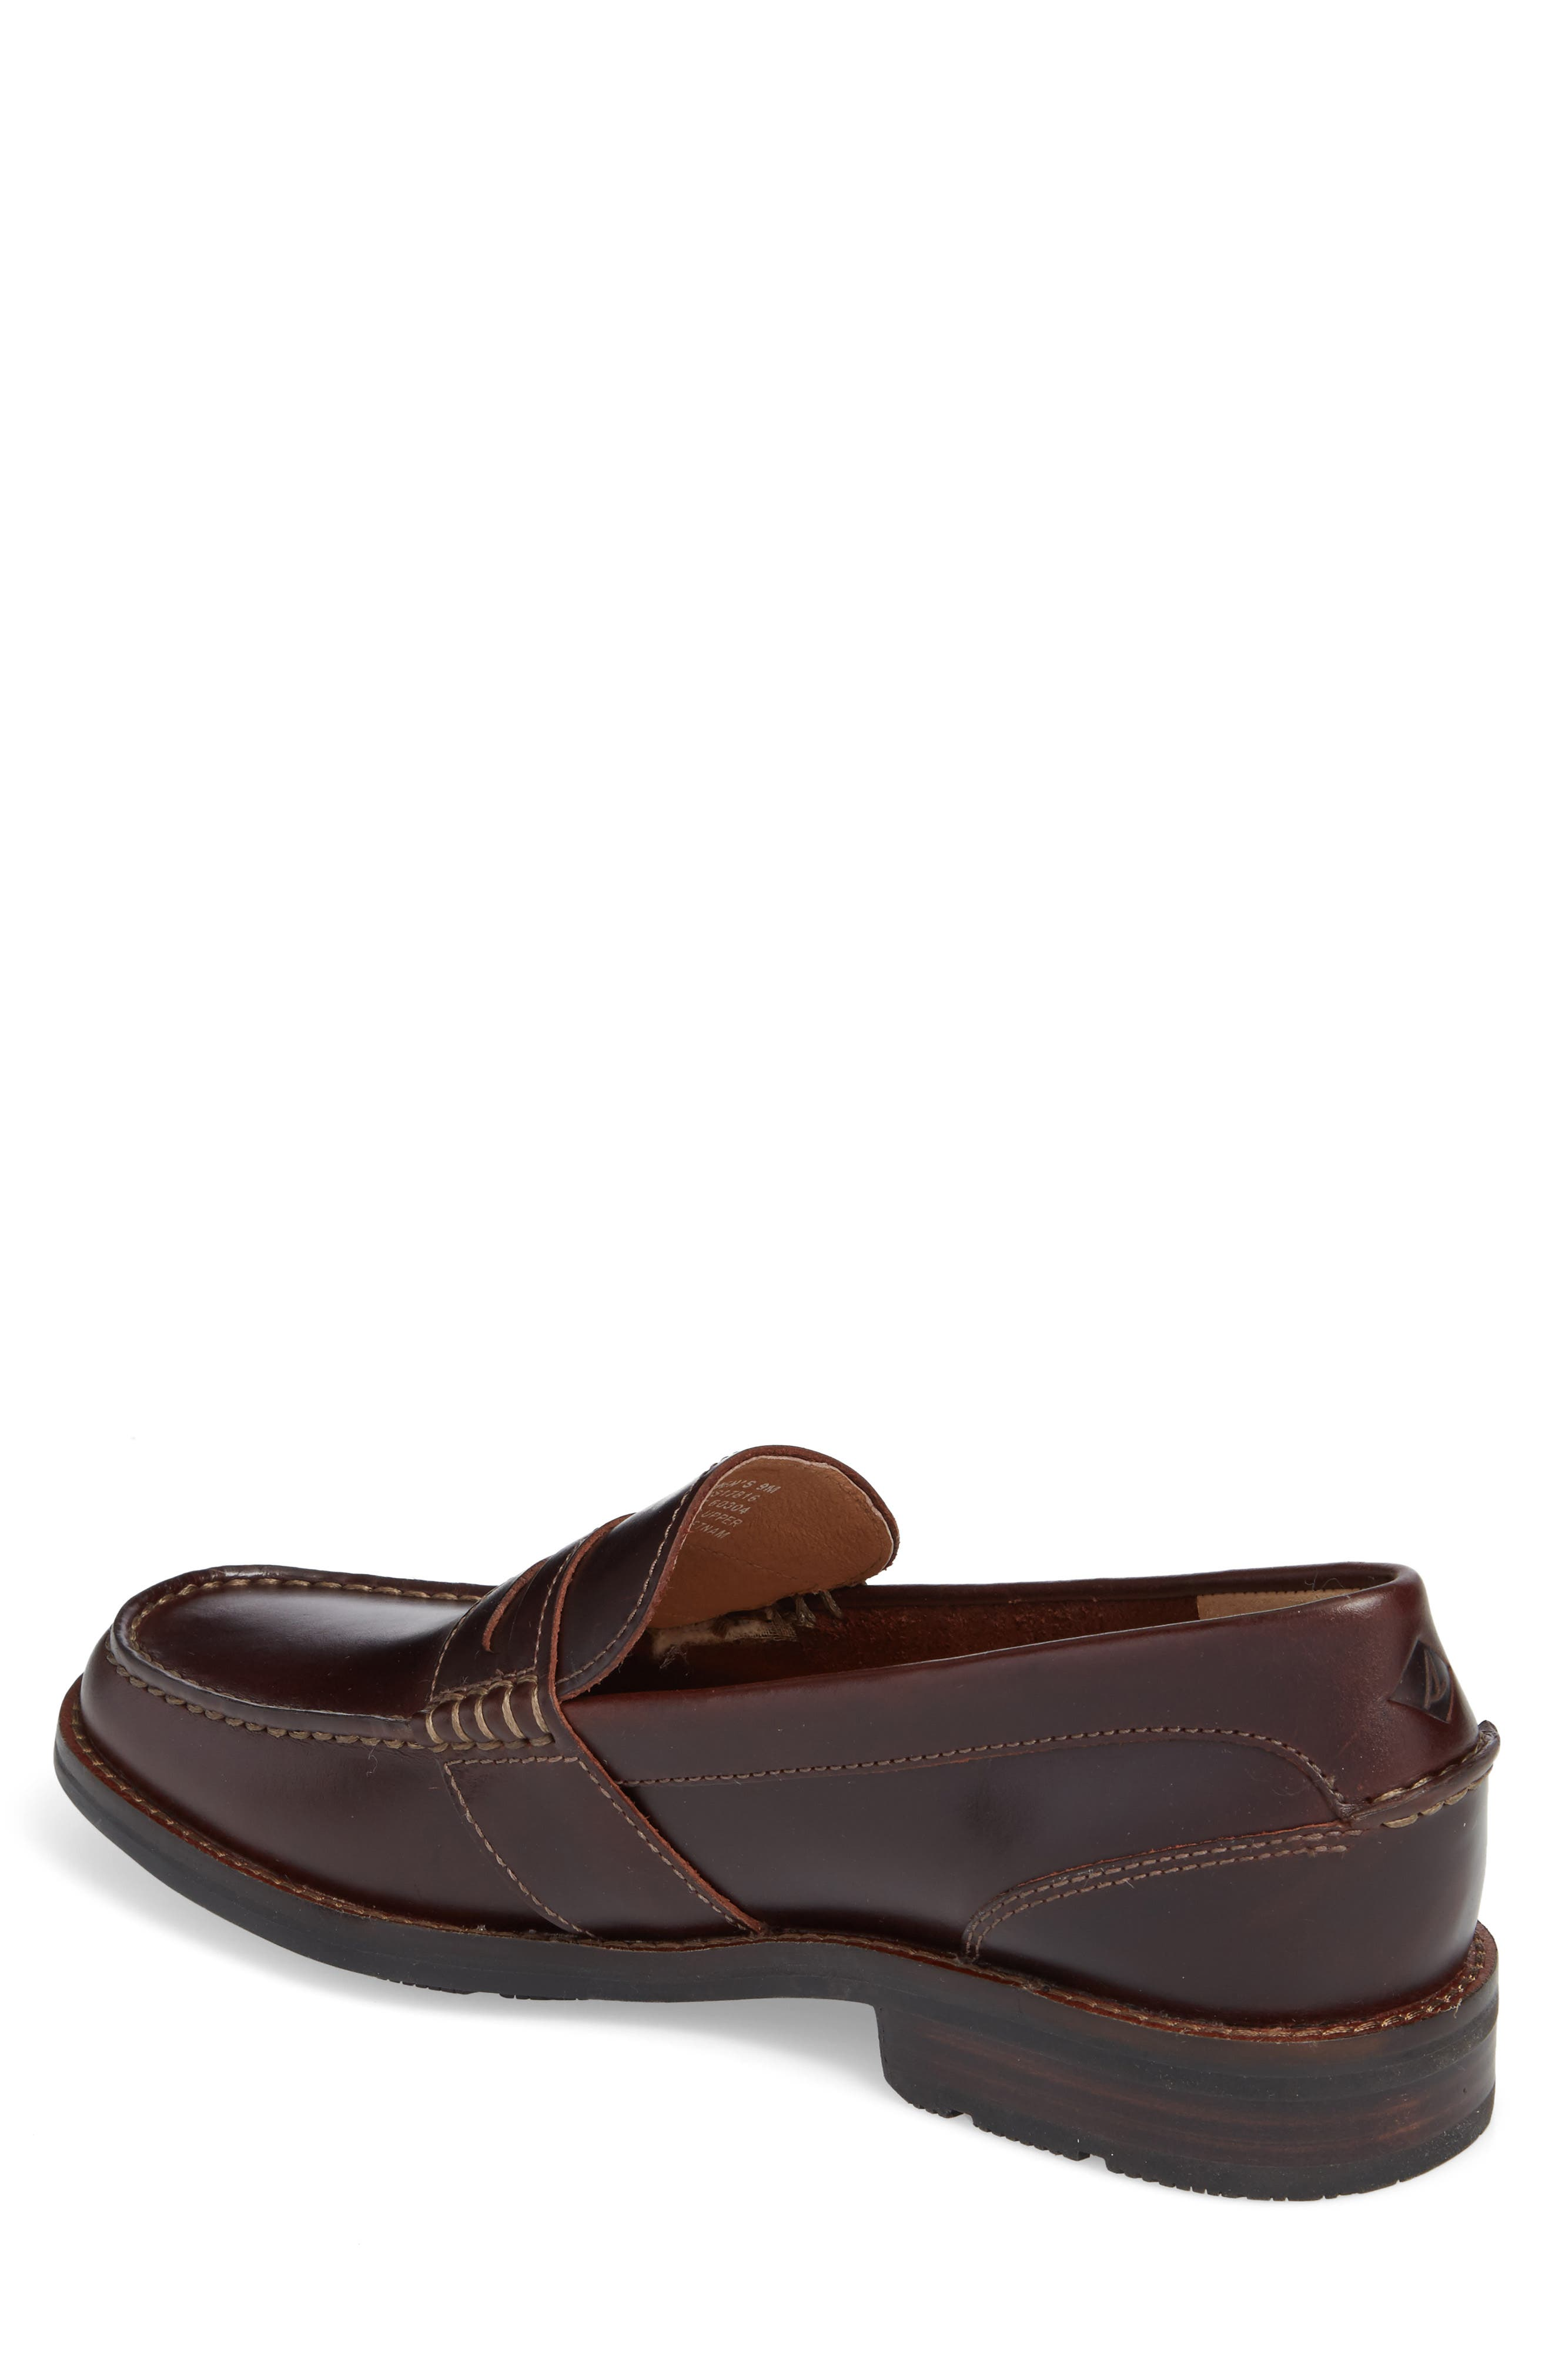 Essex Penny Loafer,                             Alternate thumbnail 2, color,                             AMARETTO LEATHER